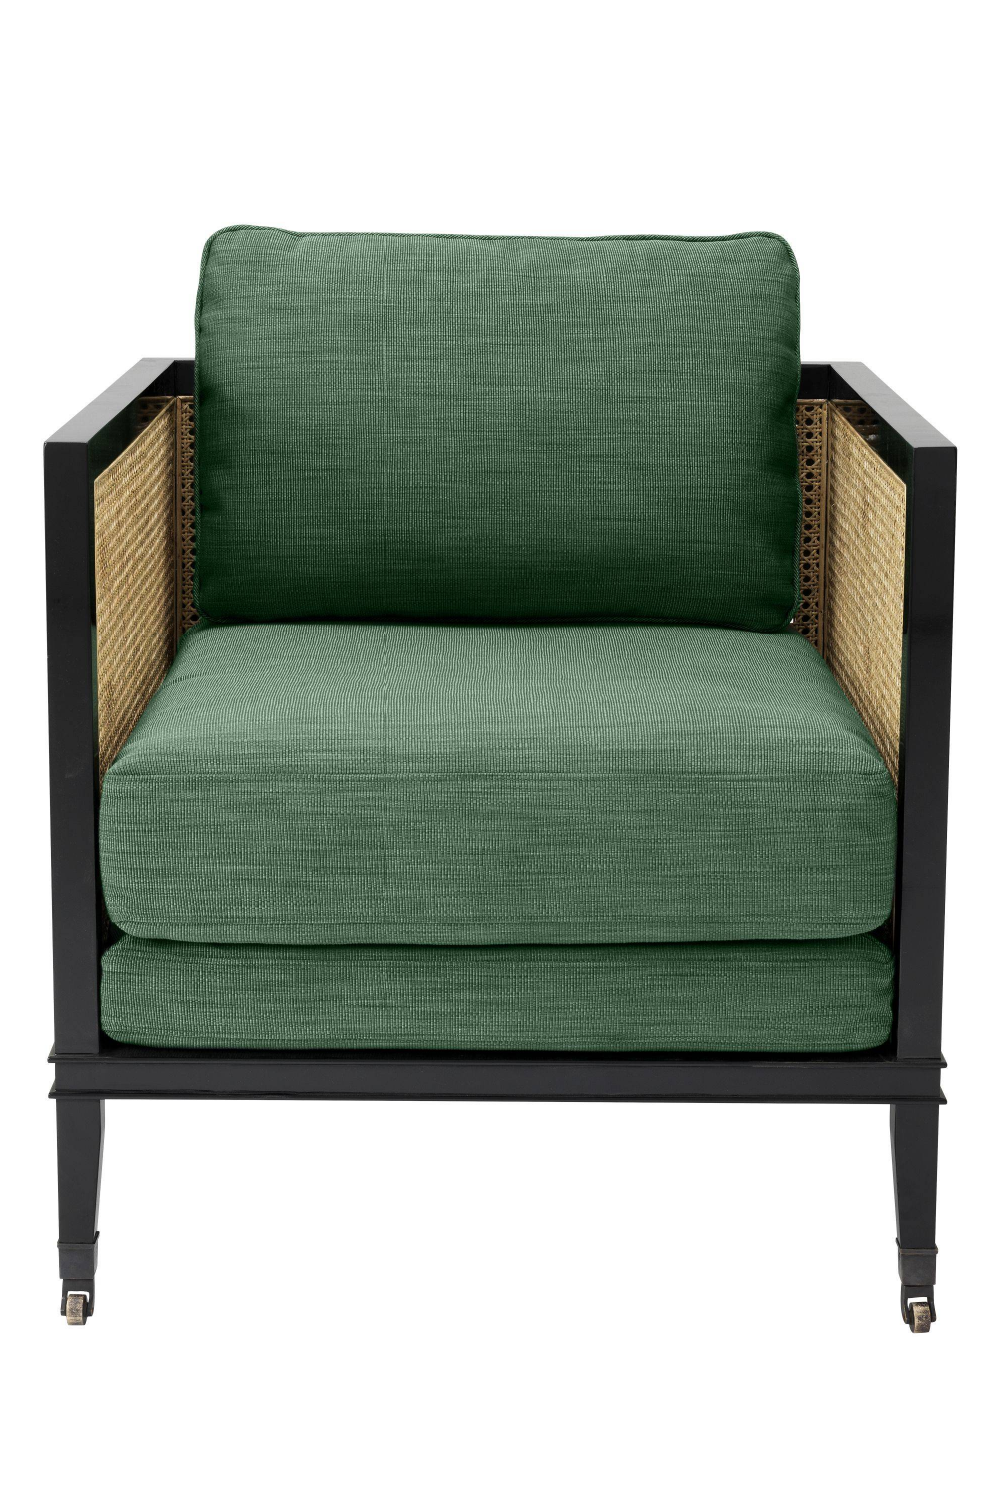 Green Upholstered Caned Armchair | Eichholtz Lauriston | Woodfurniture.com